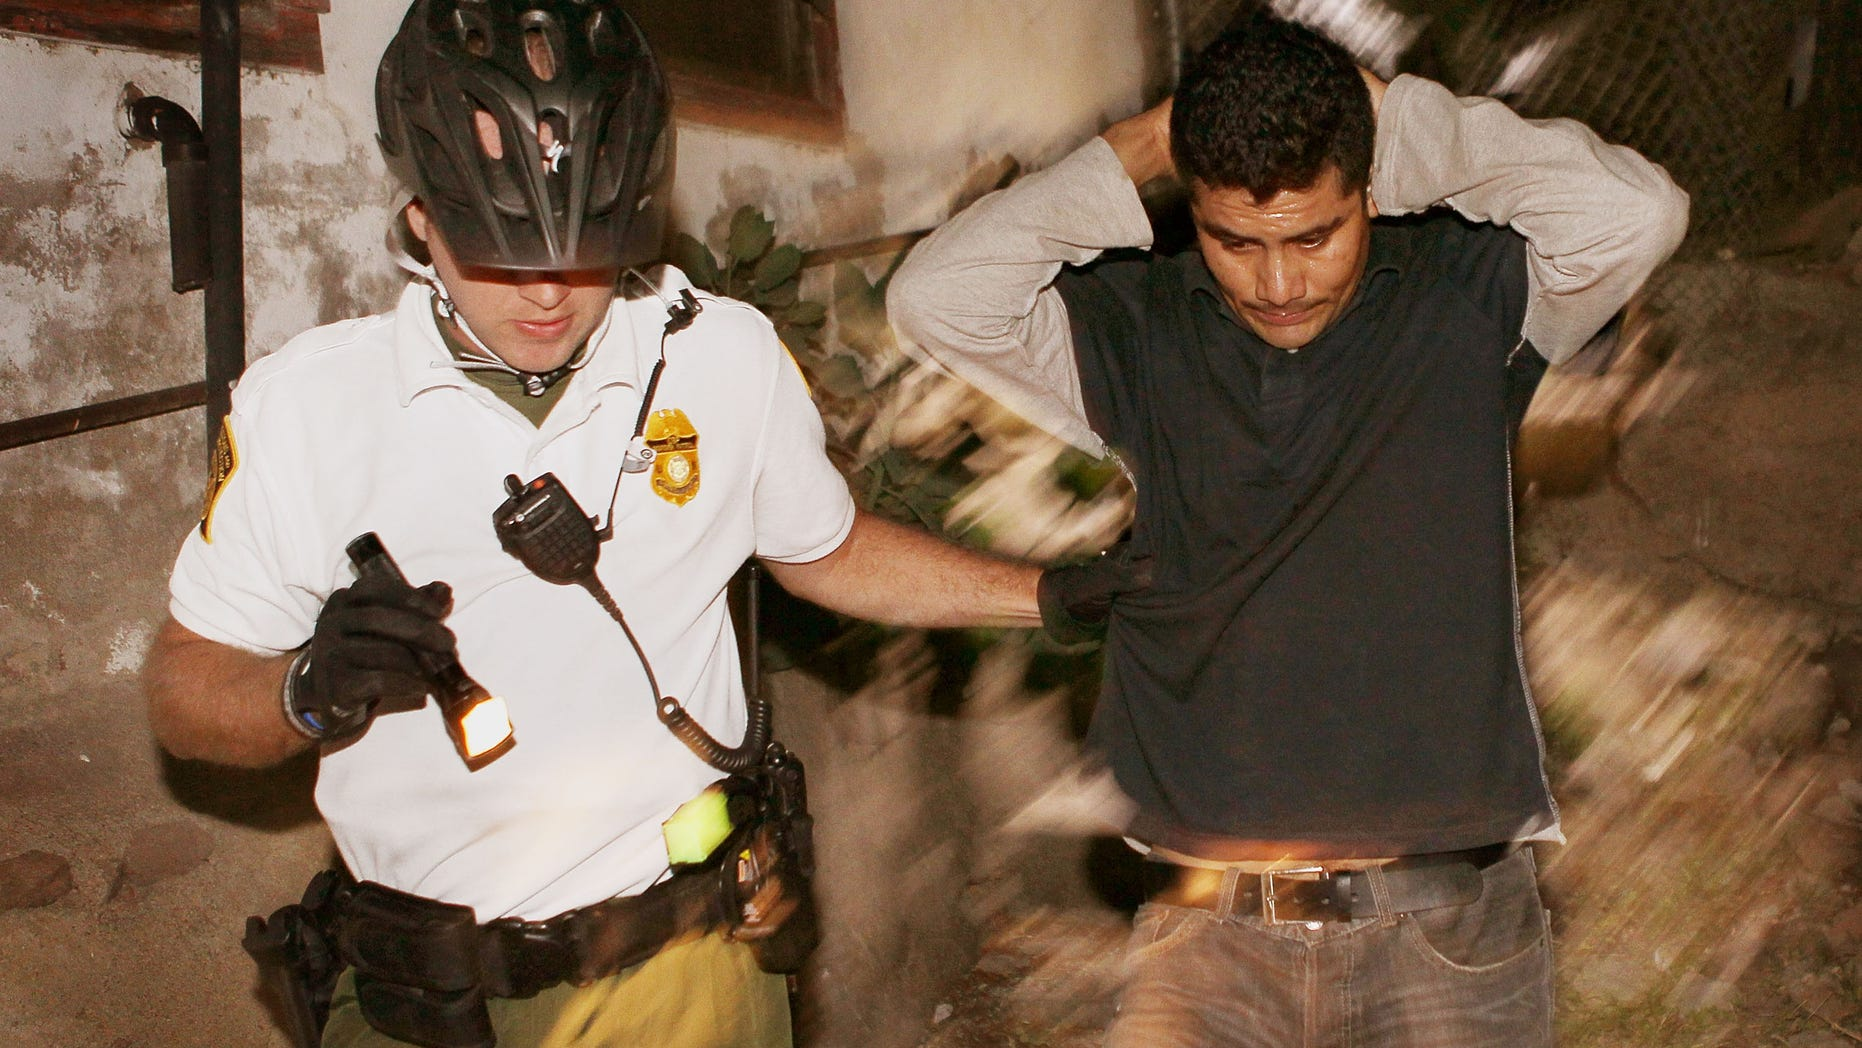 NOGALES, AZ - JUNE 02:  An U.S. Customs and Border Protection bike patrol agent apprehends an undocumented immigrant after he was spotted entering the country illegally June 2, 2010 in Nogales, Arizona. He was captured in the back yard of a home about one block from the border fence. During the 2009 fiscal year 540,865 undocumented immigrants were apprehended entering the United States illegally along the Mexican border, 241,000 of those were captured in the 262 mile stretch of the border known as the Tucson Sector.  (Photo by Scott Olson/Getty Images)